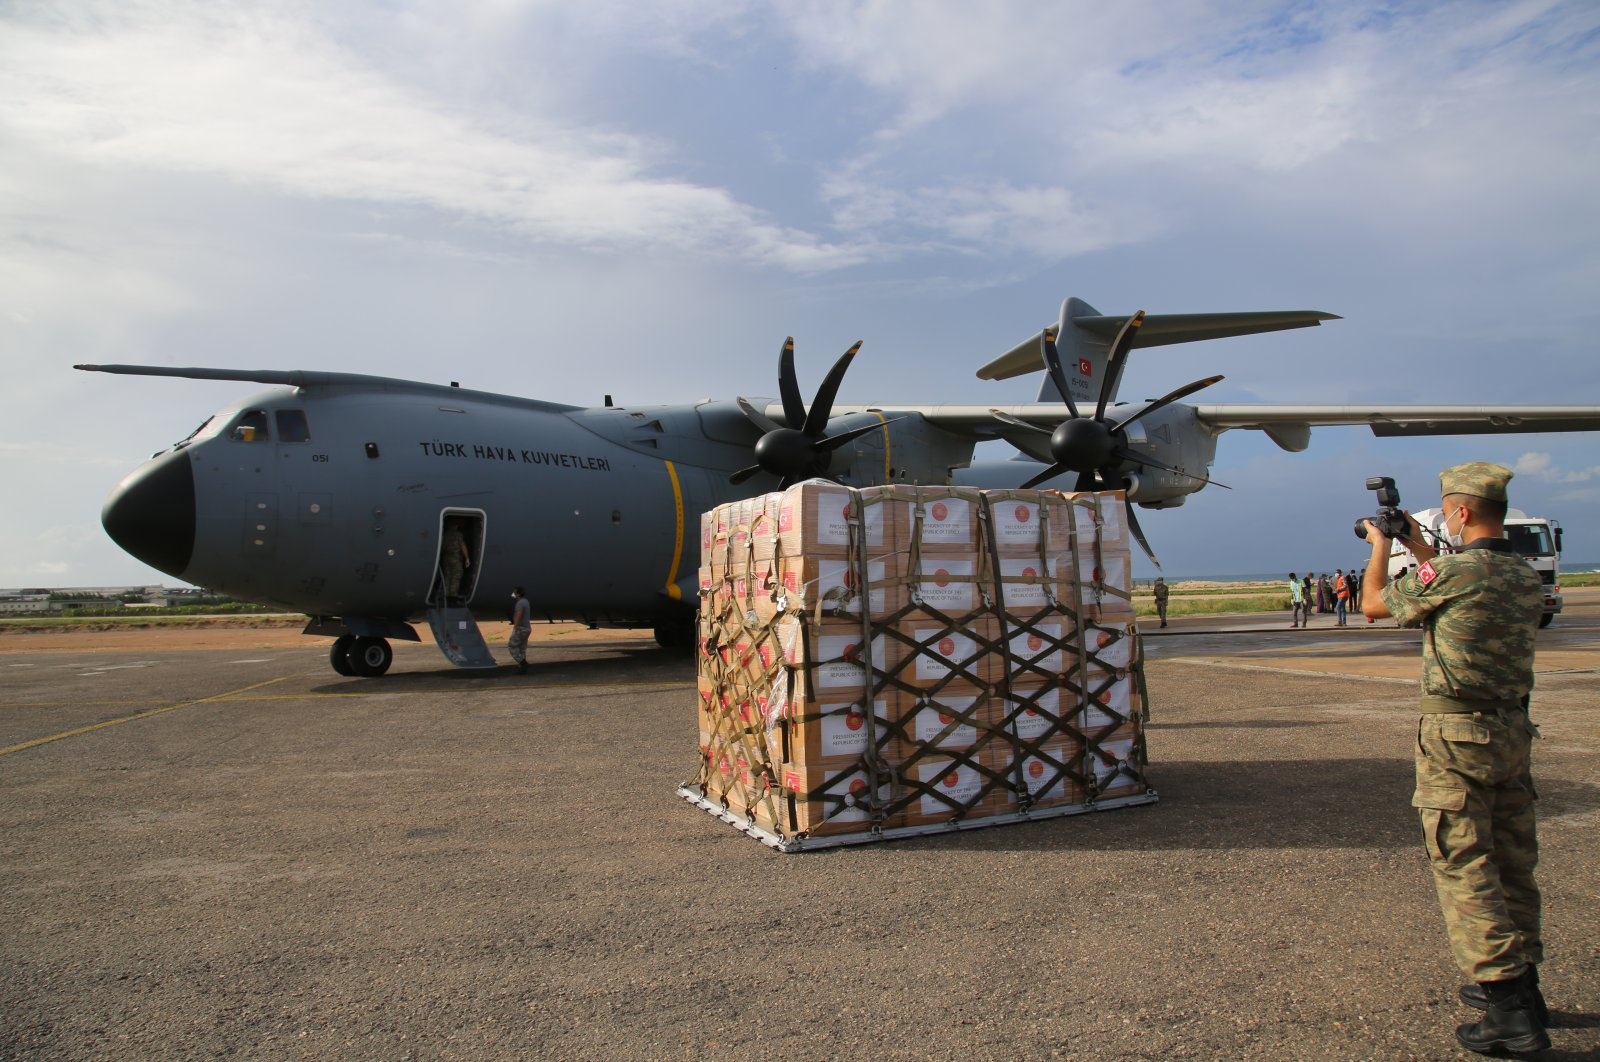 Medical supplies that Turkey sent to fight the coronavirus outbreak arrive in Somalia, May 2, 2020. (AA Photo)